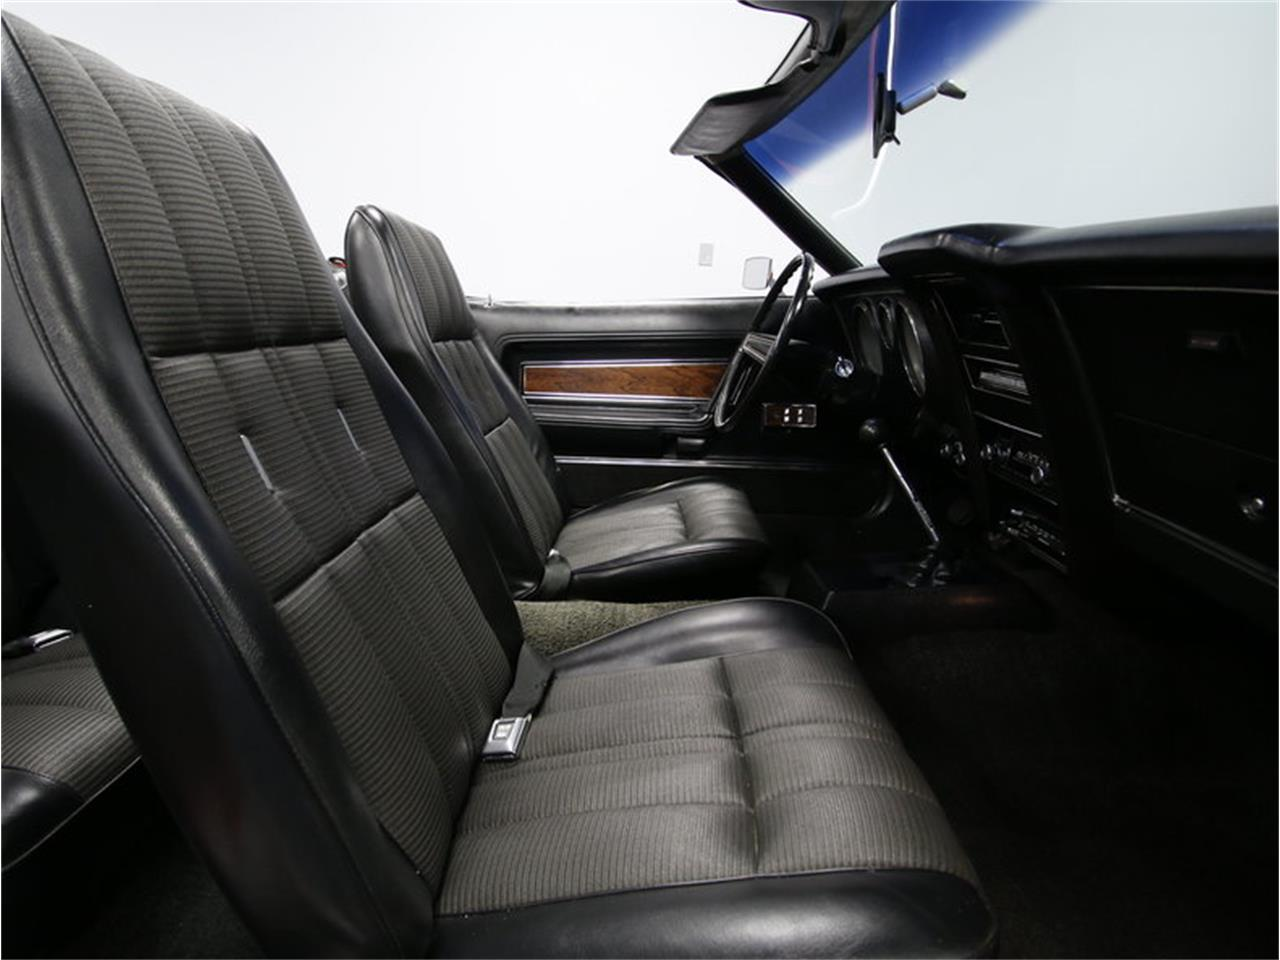 Large Picture of Classic '73 Ford Mustang 351 Cobra Jet - $24,995.00 - KISW